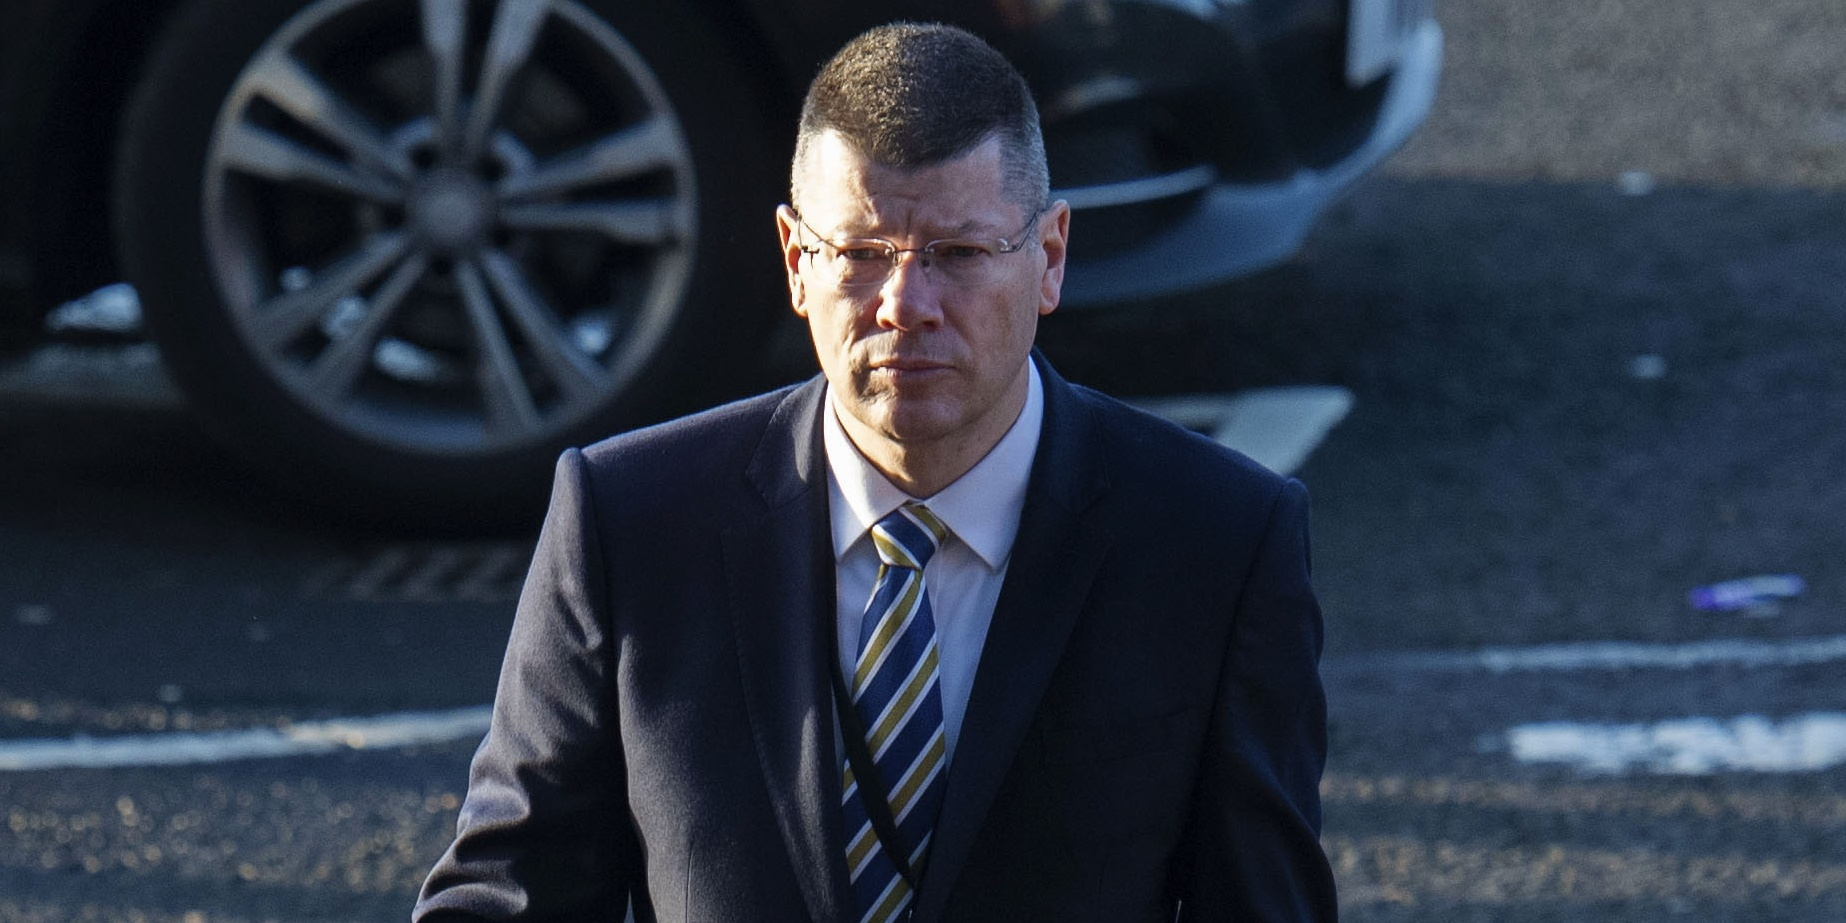 SPFL chief Neil Doncaster faces huge decisions regarding the domestic game